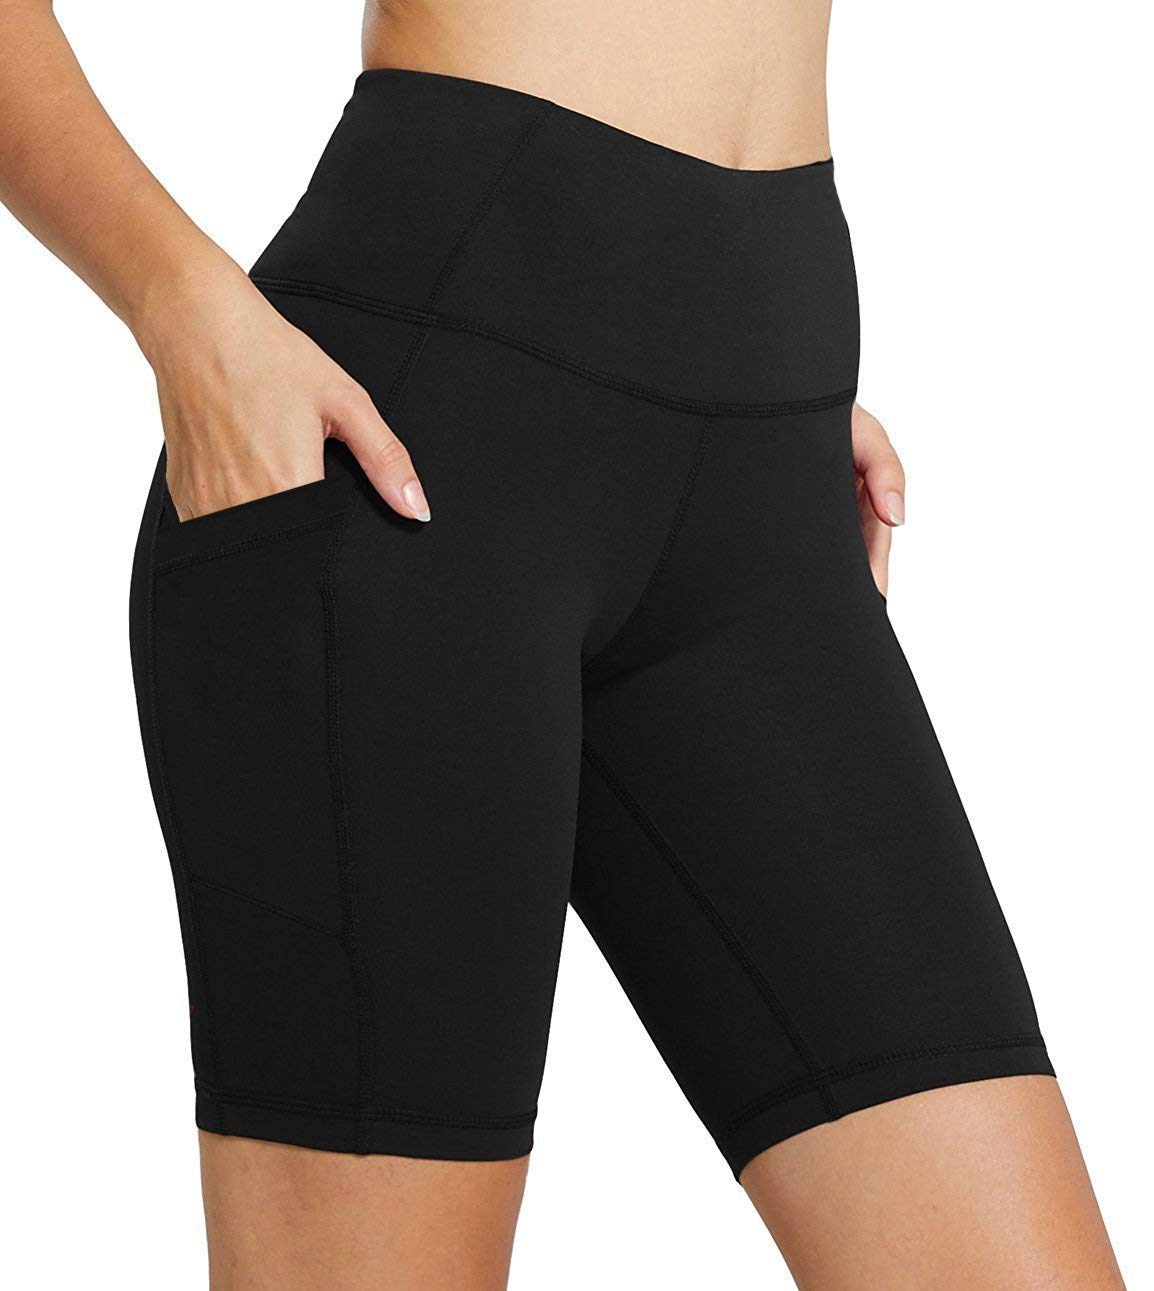 FIRM ABS Stretch Active Shorts Running Cycling Workout Short Leggings for Women Black L